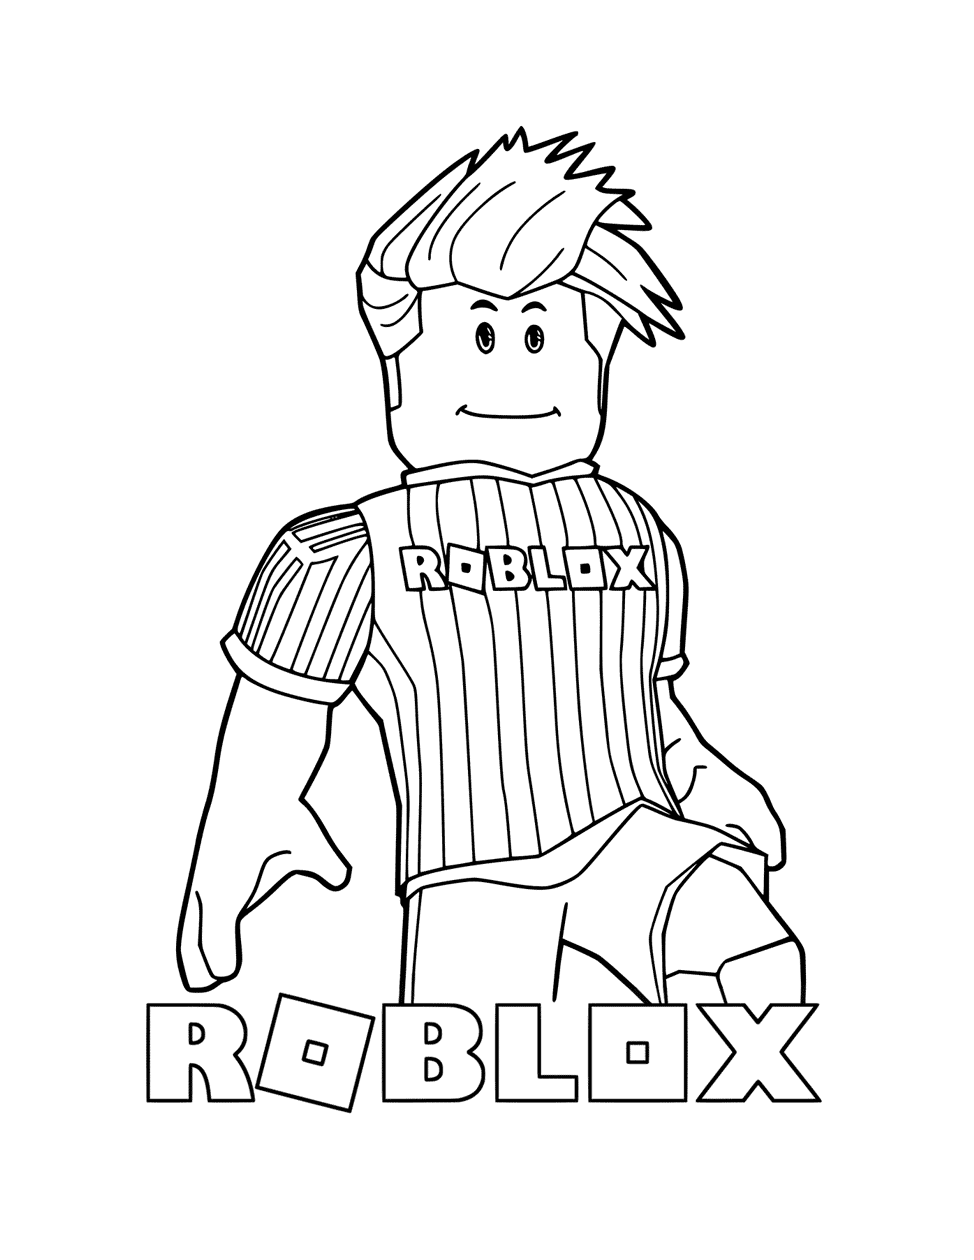 - Roblox Soccer Player Coloring Page – Coloring.rocks!